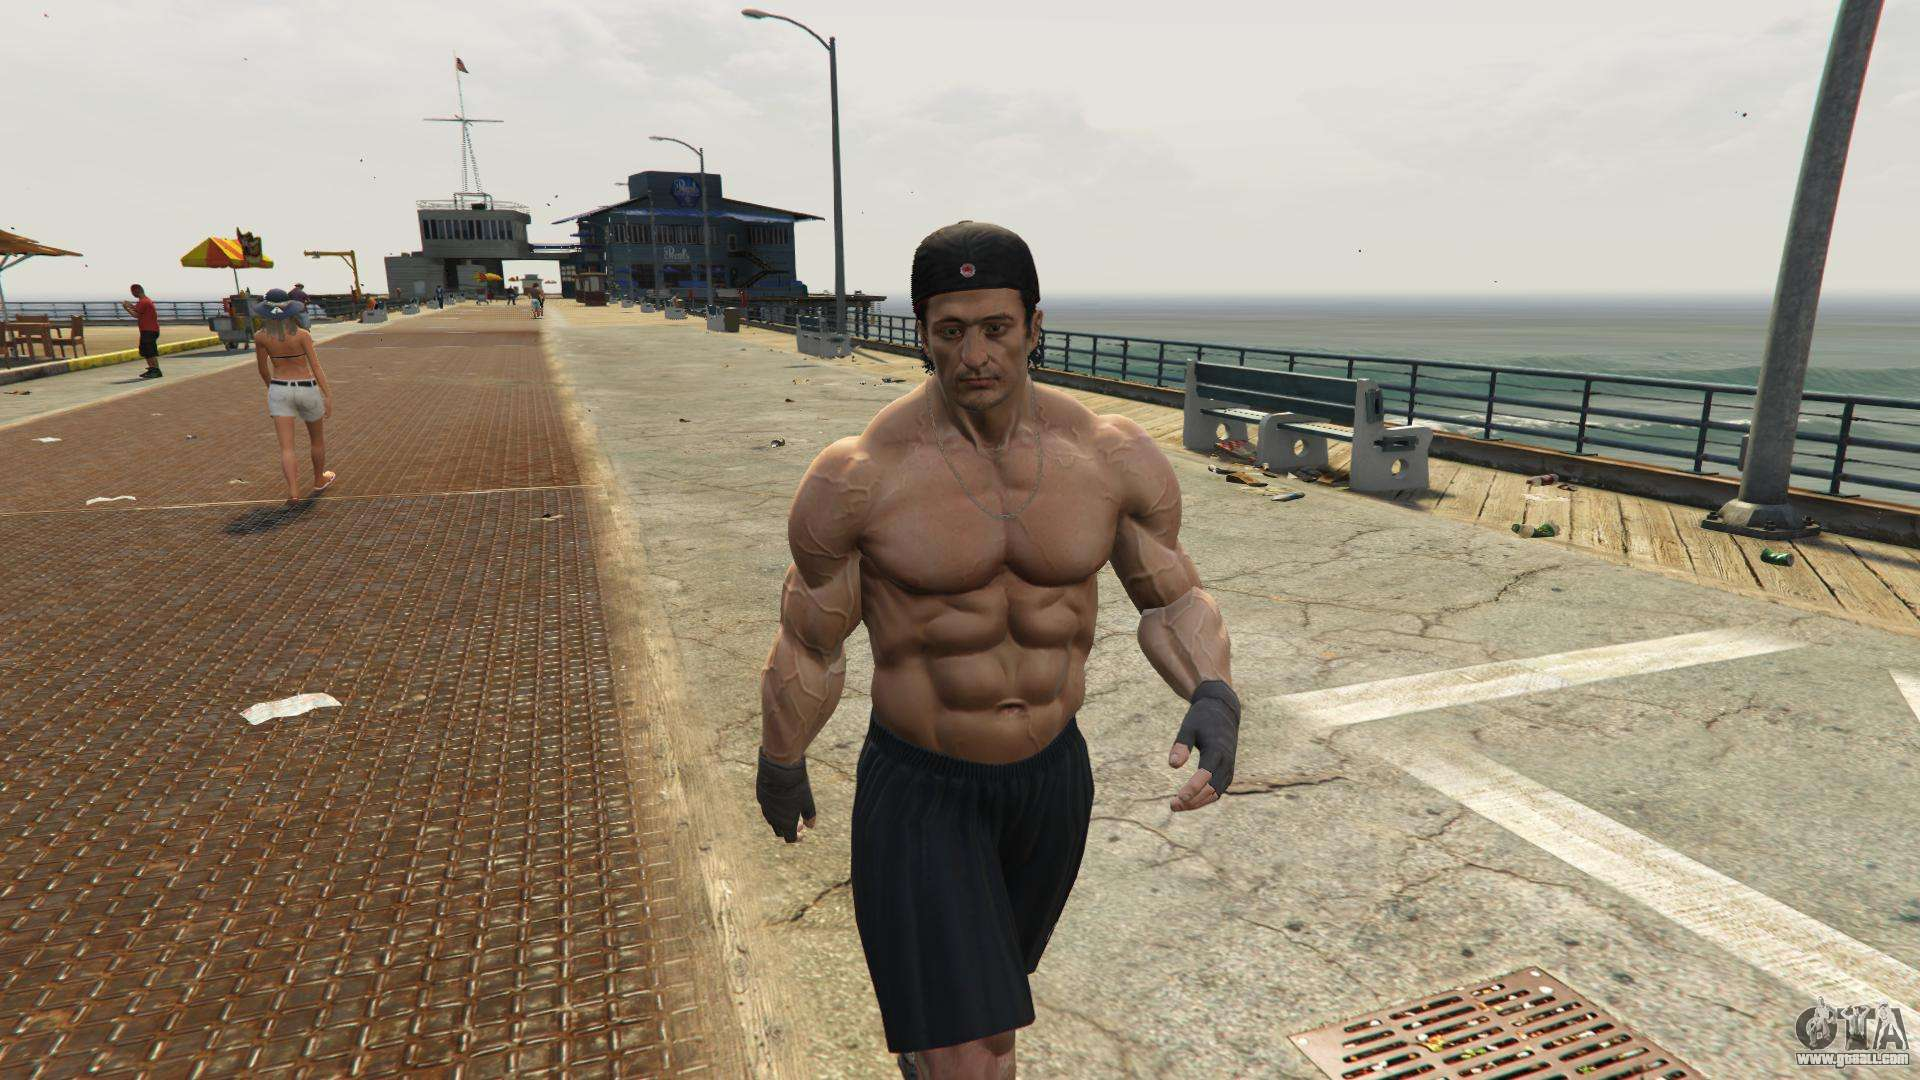 rc planes big with 66089 Additional Models Of People And Vehicles 08 A on 15606 Gta Iv Animation In San Andreas together with Watch also Watch moreover 64668 Tsunami besides .